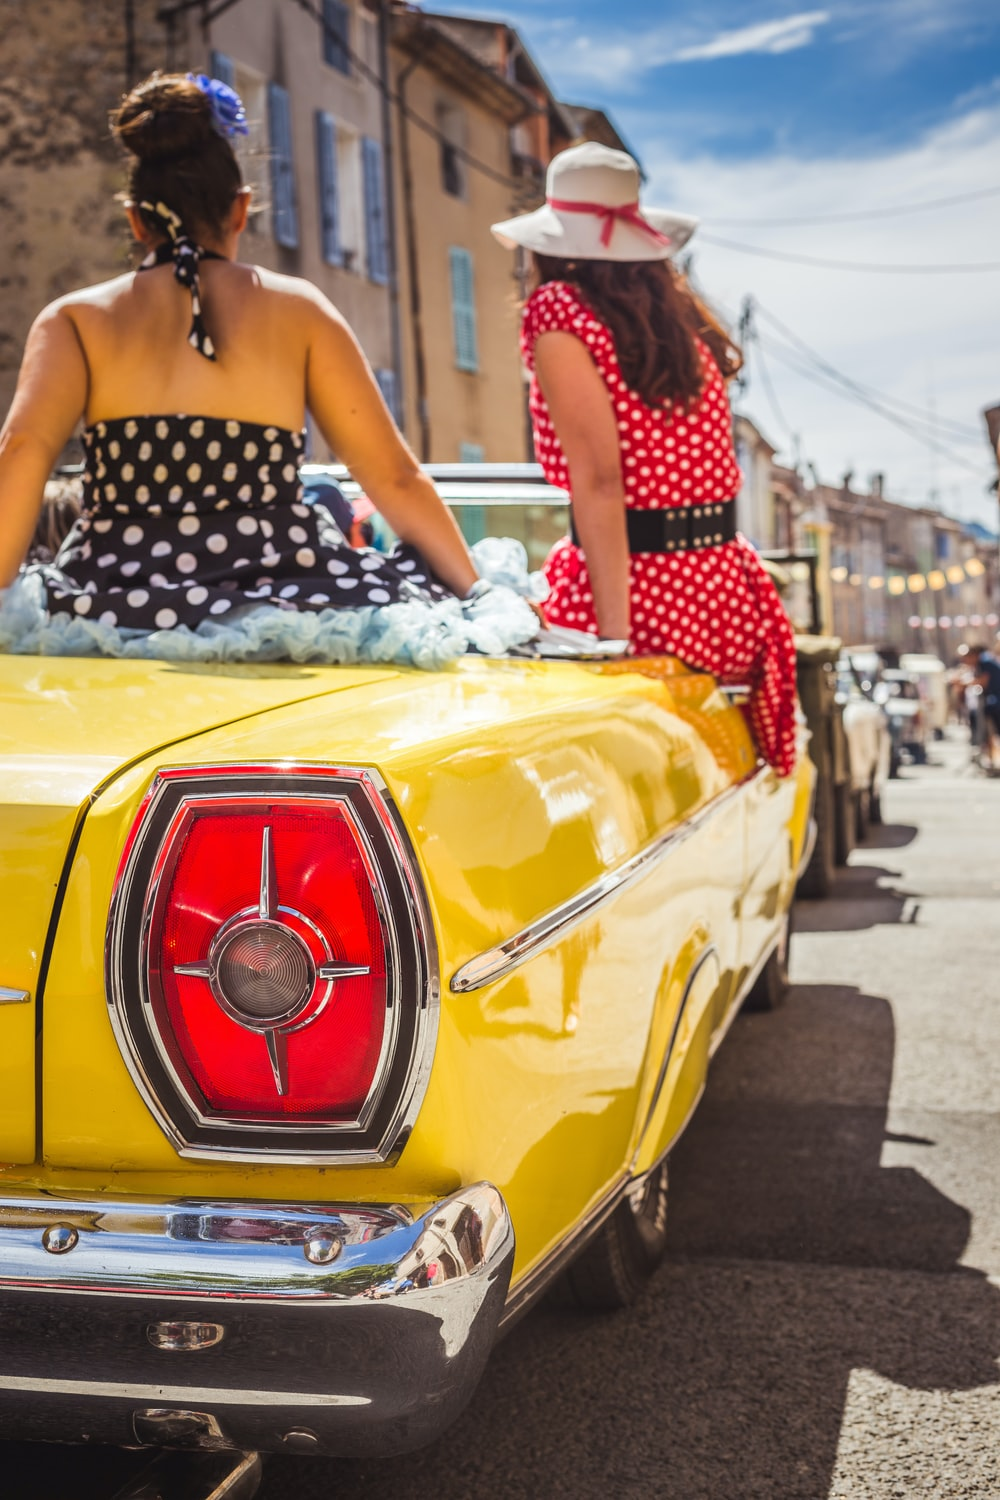 woman in black and white polka dot dress sitting on yellow car hood during daytime